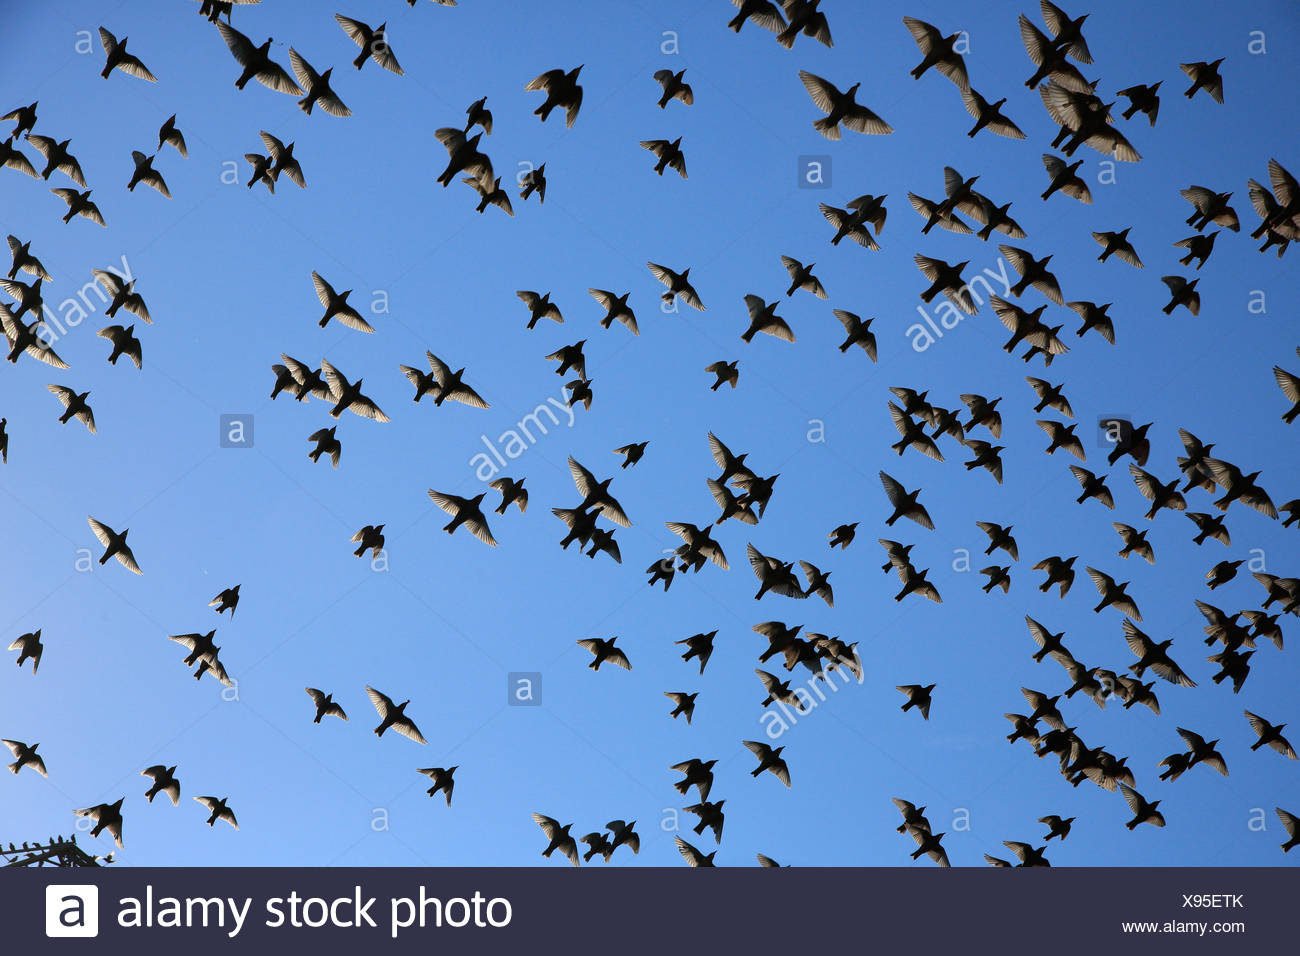 Common starlings (Sturnus vulgaris), swarm flying, migrating, Finsing, Bavaria, Germany Stock Photo